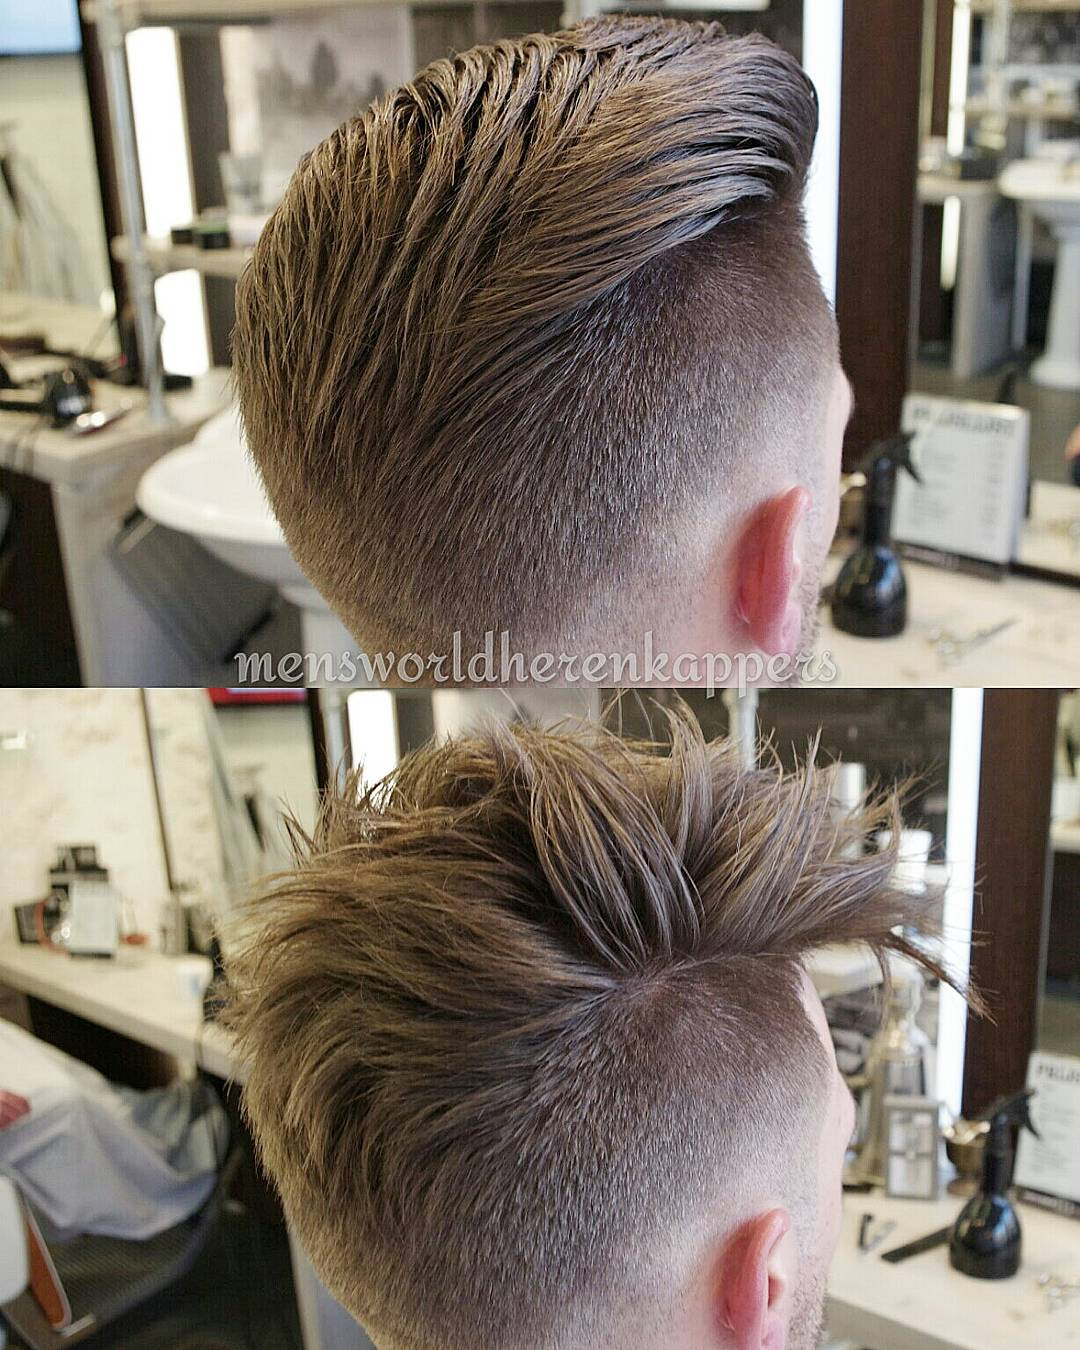 mensworldherkappers-undercut-styled-two-ways